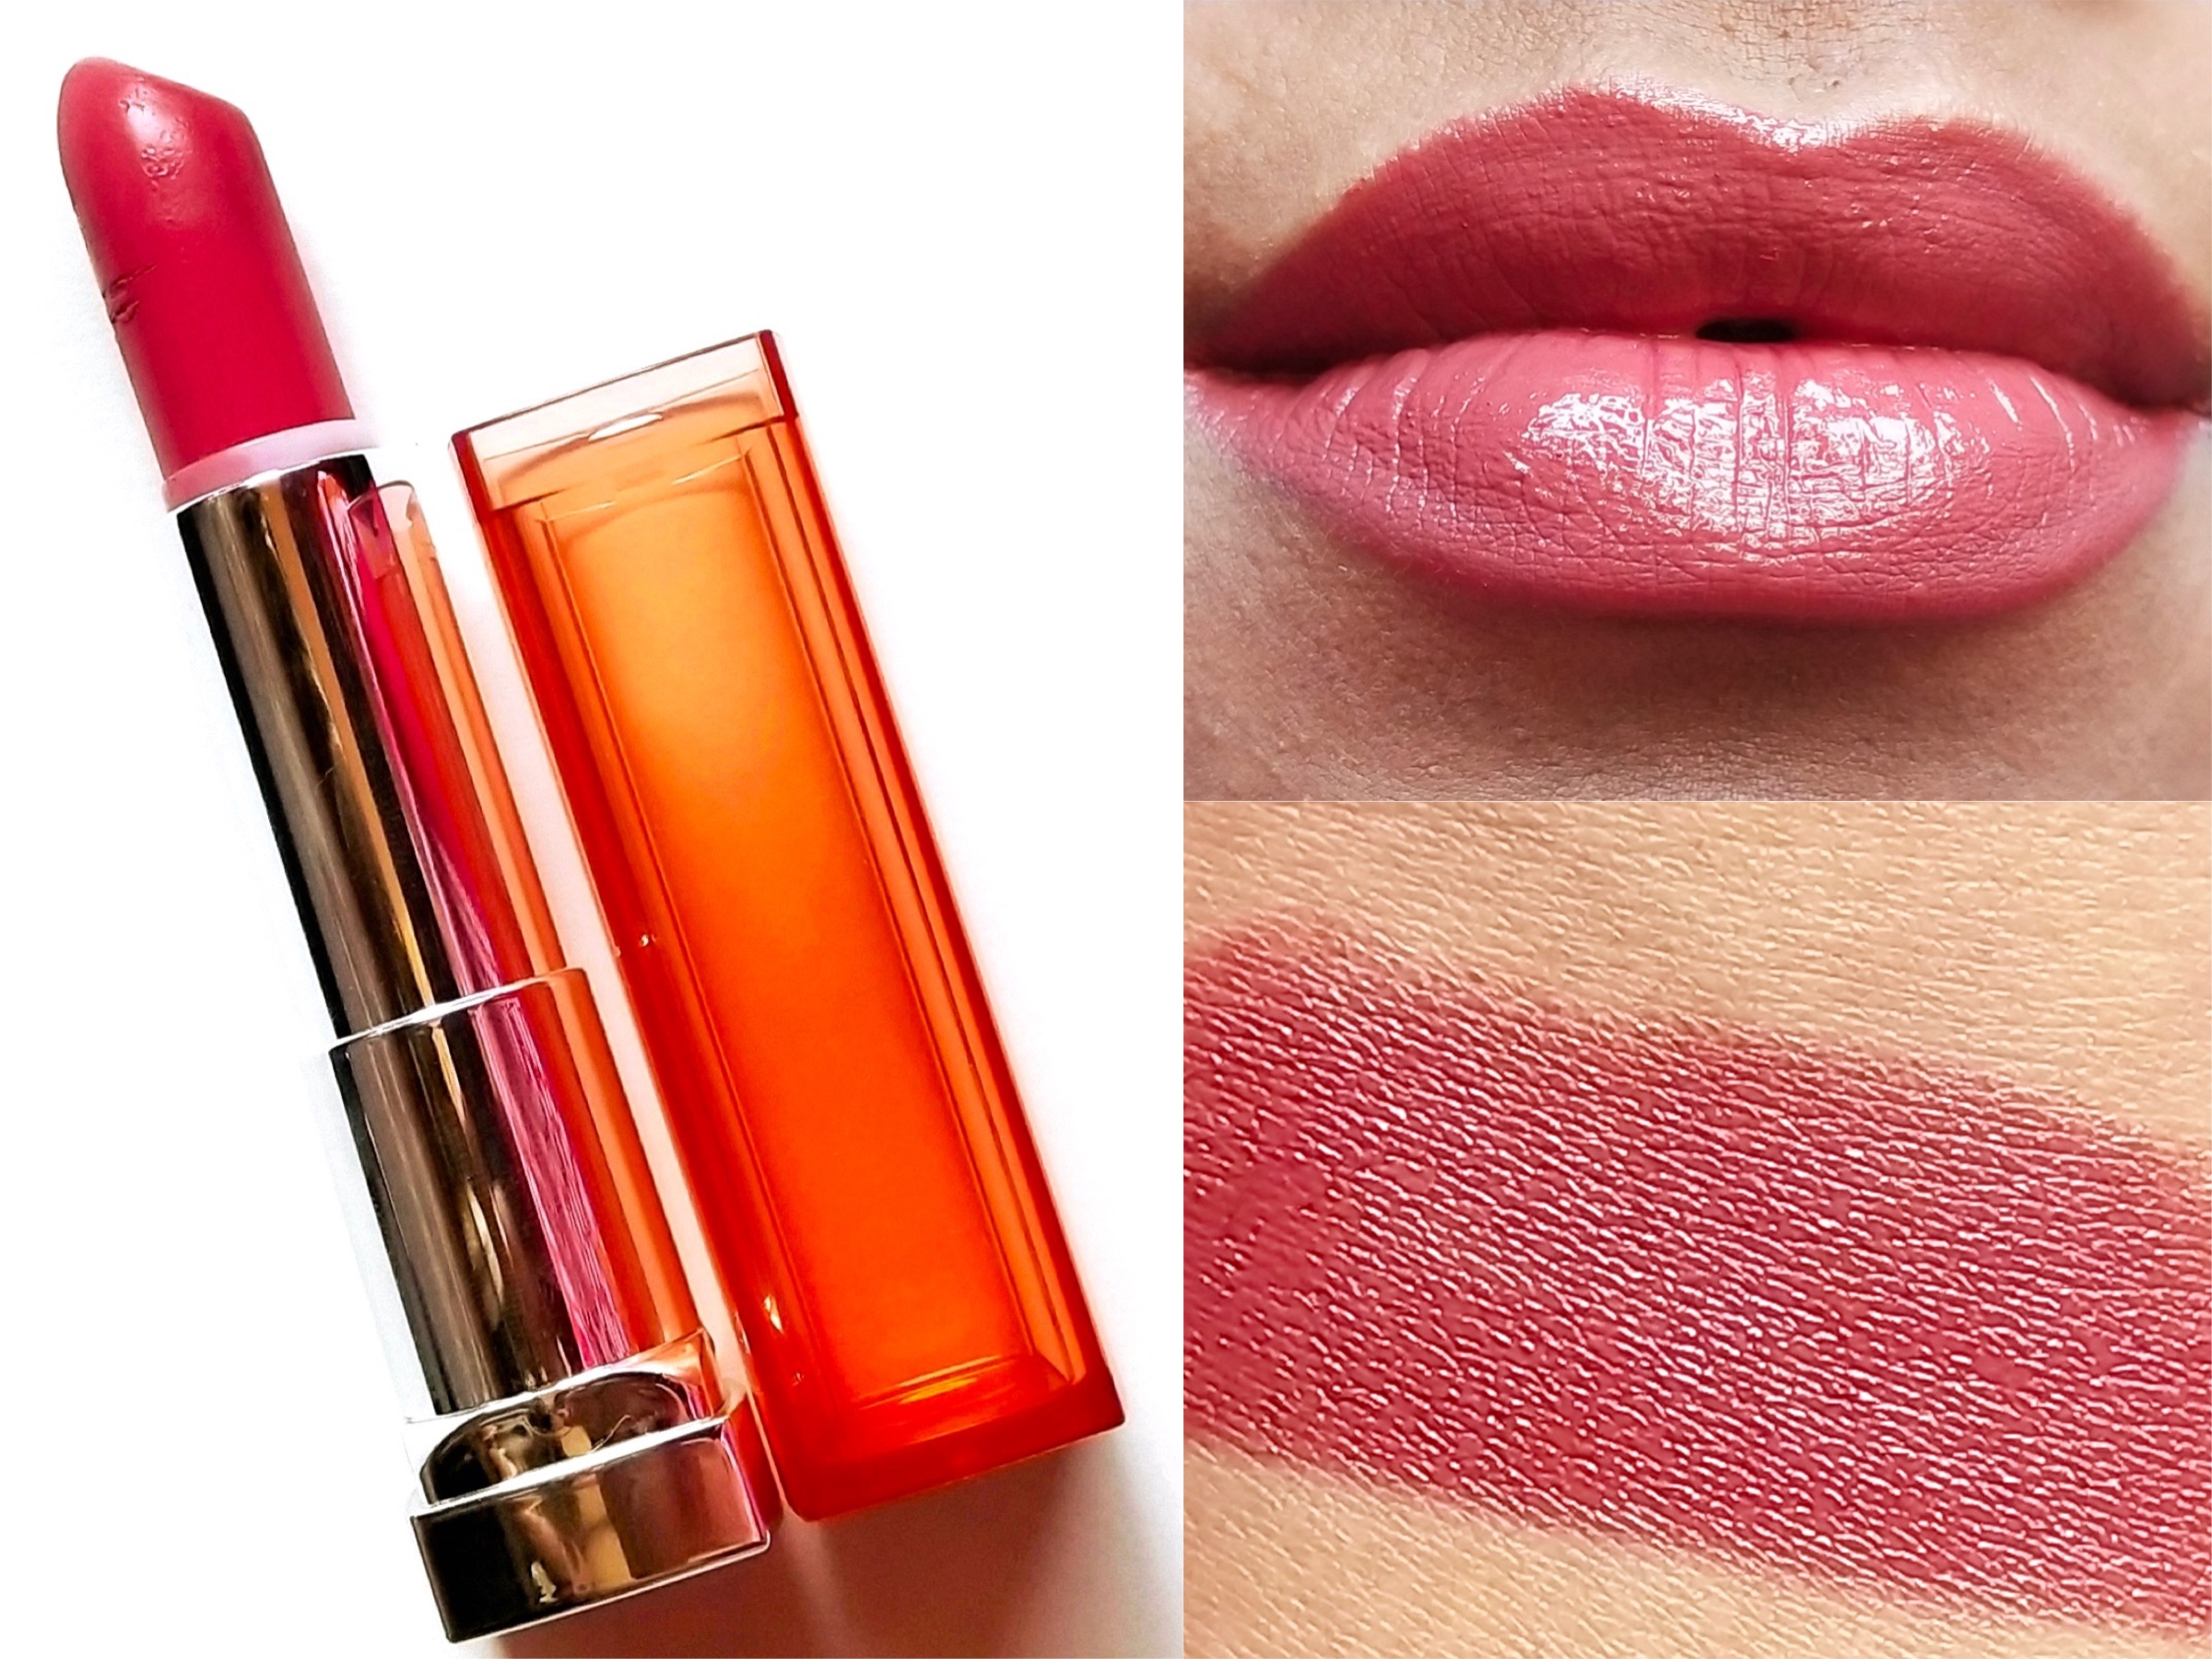 Hot Maybelline Nude Swatches Images